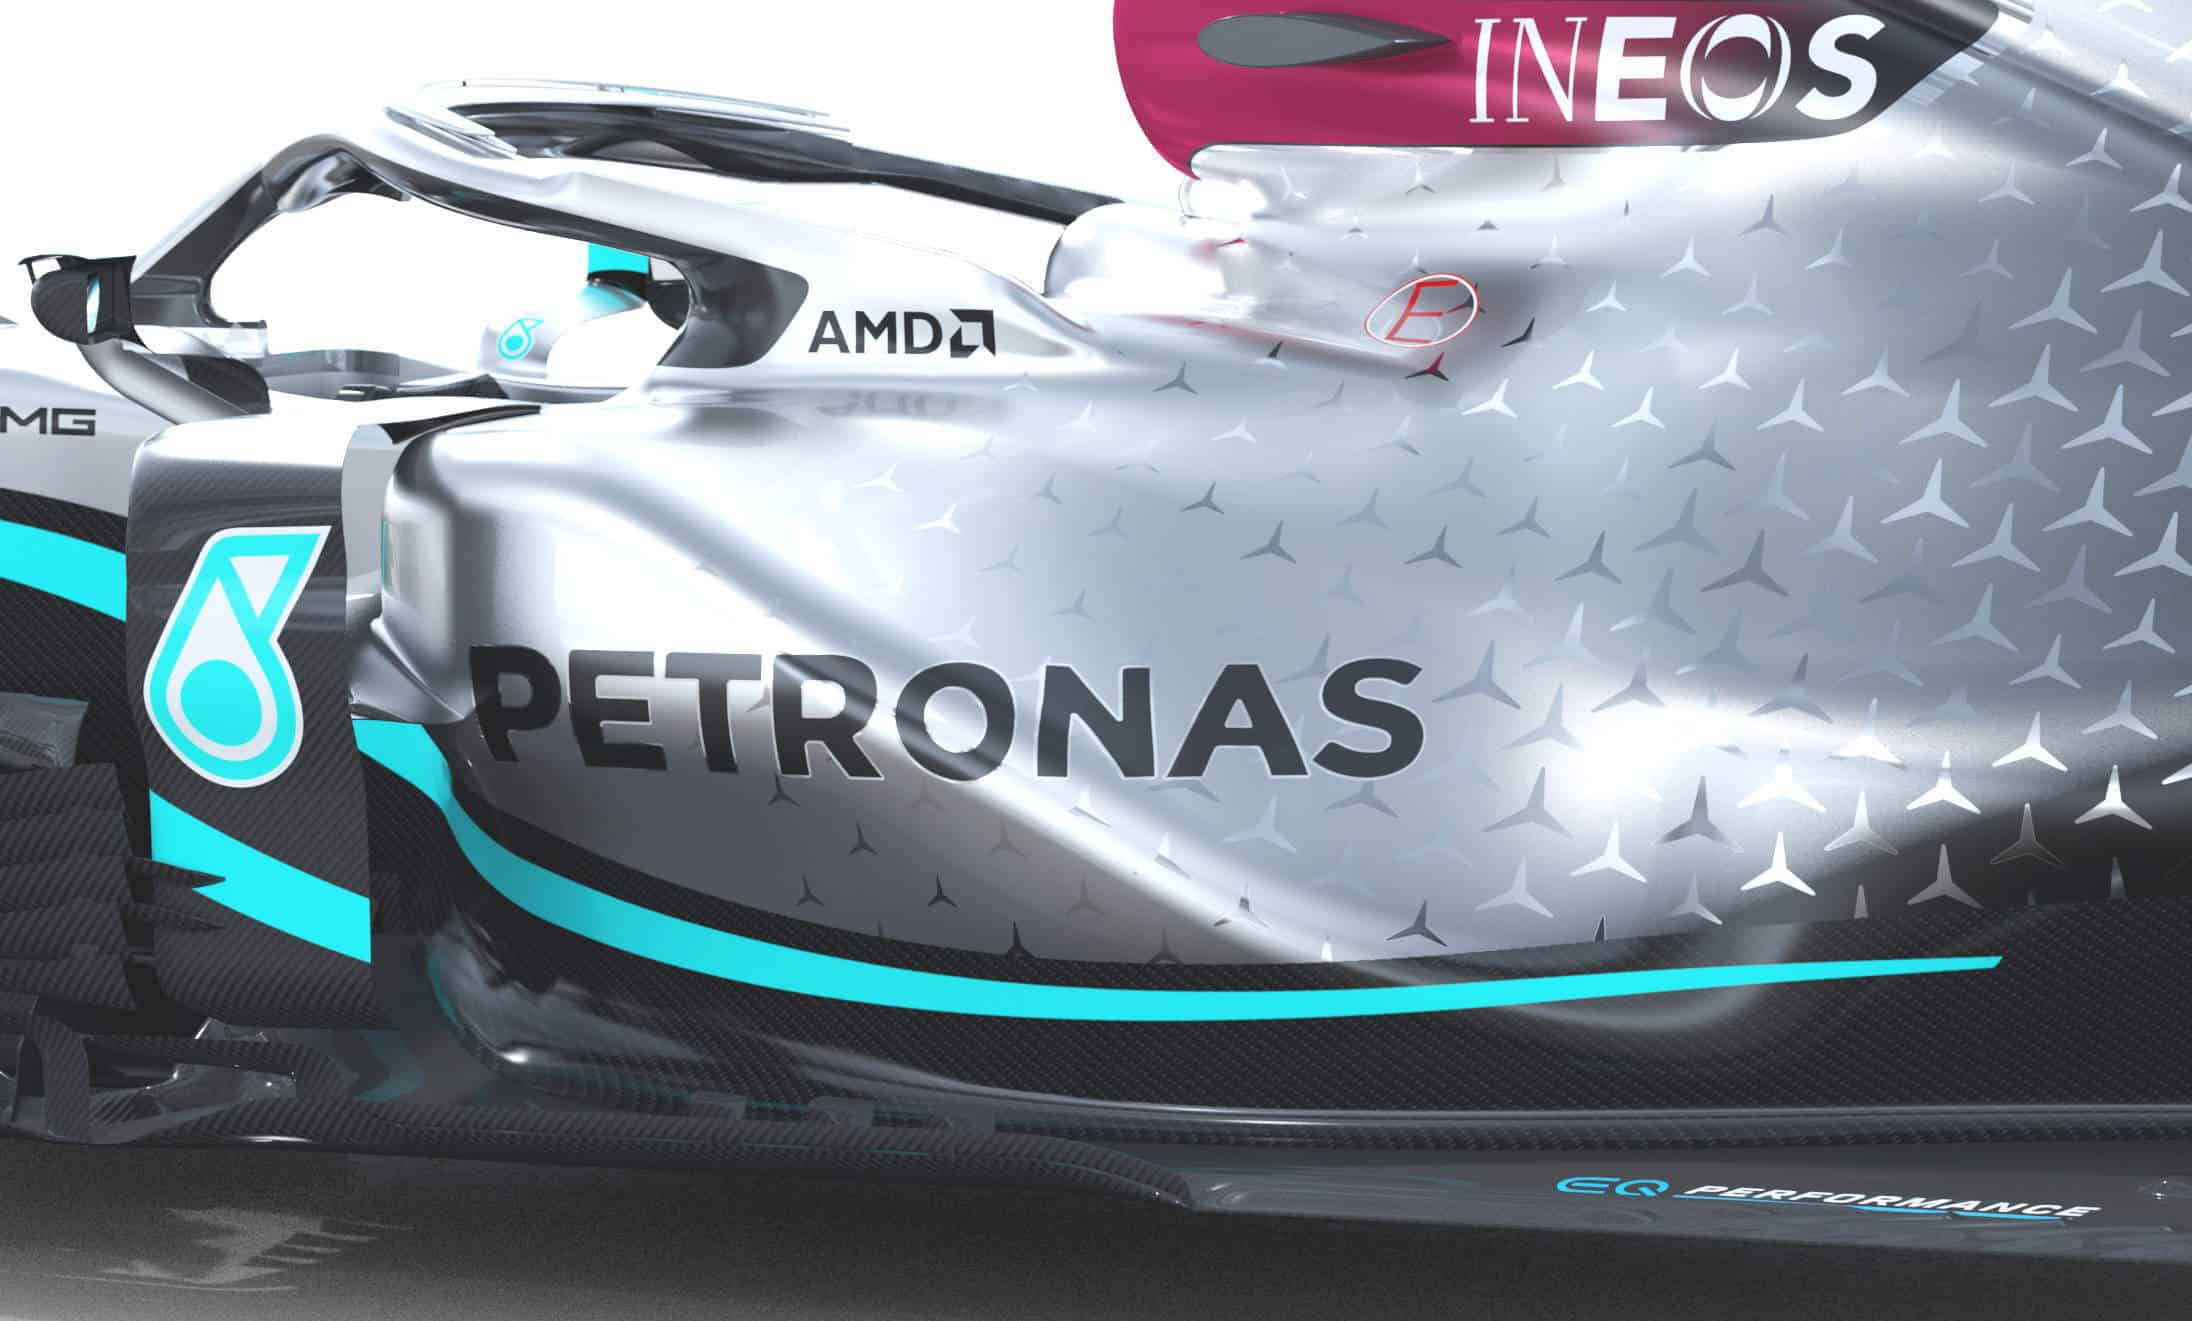 2020 F1 Mercedes F1 W11 sidepods side angle view Photo Daimler Edited by MAXF1net